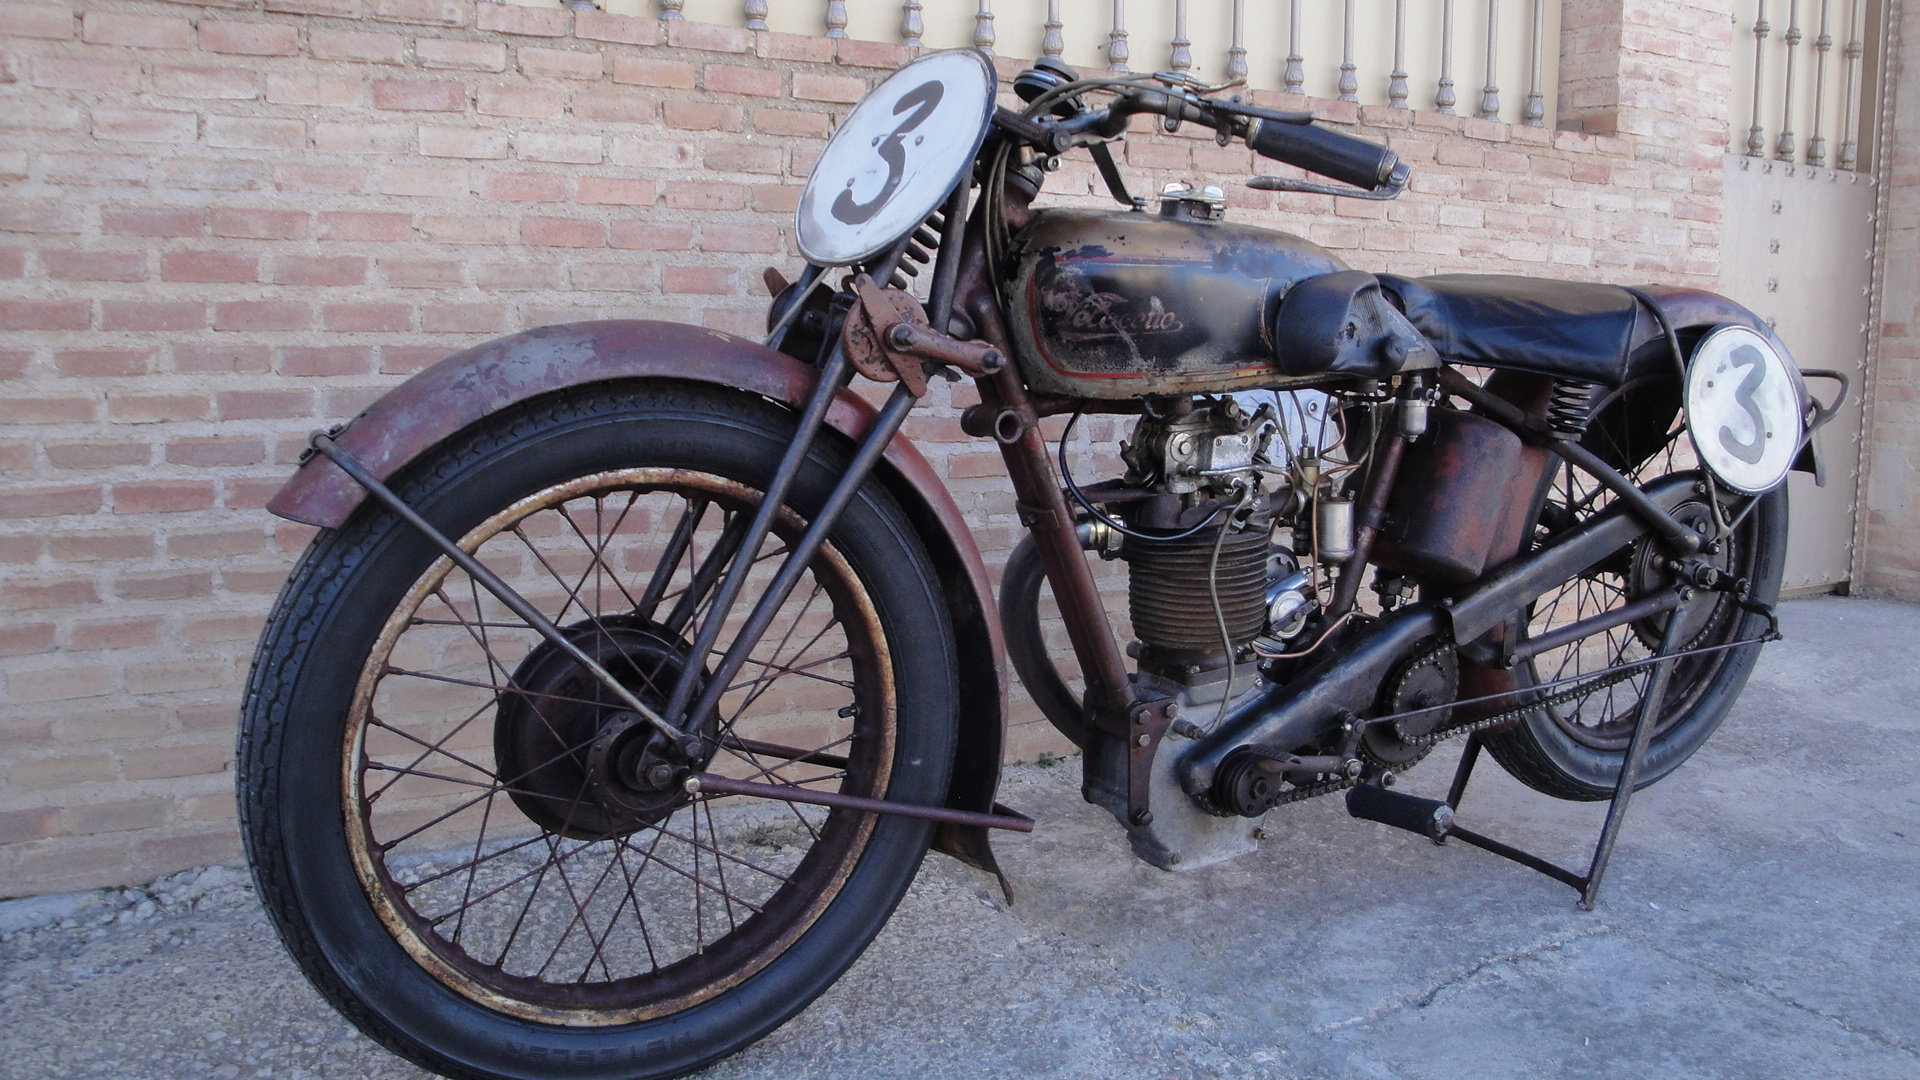 VELOCETTE KN 350cc OHC RACER YEAR 1929 For Sale (picture 6 of 6)